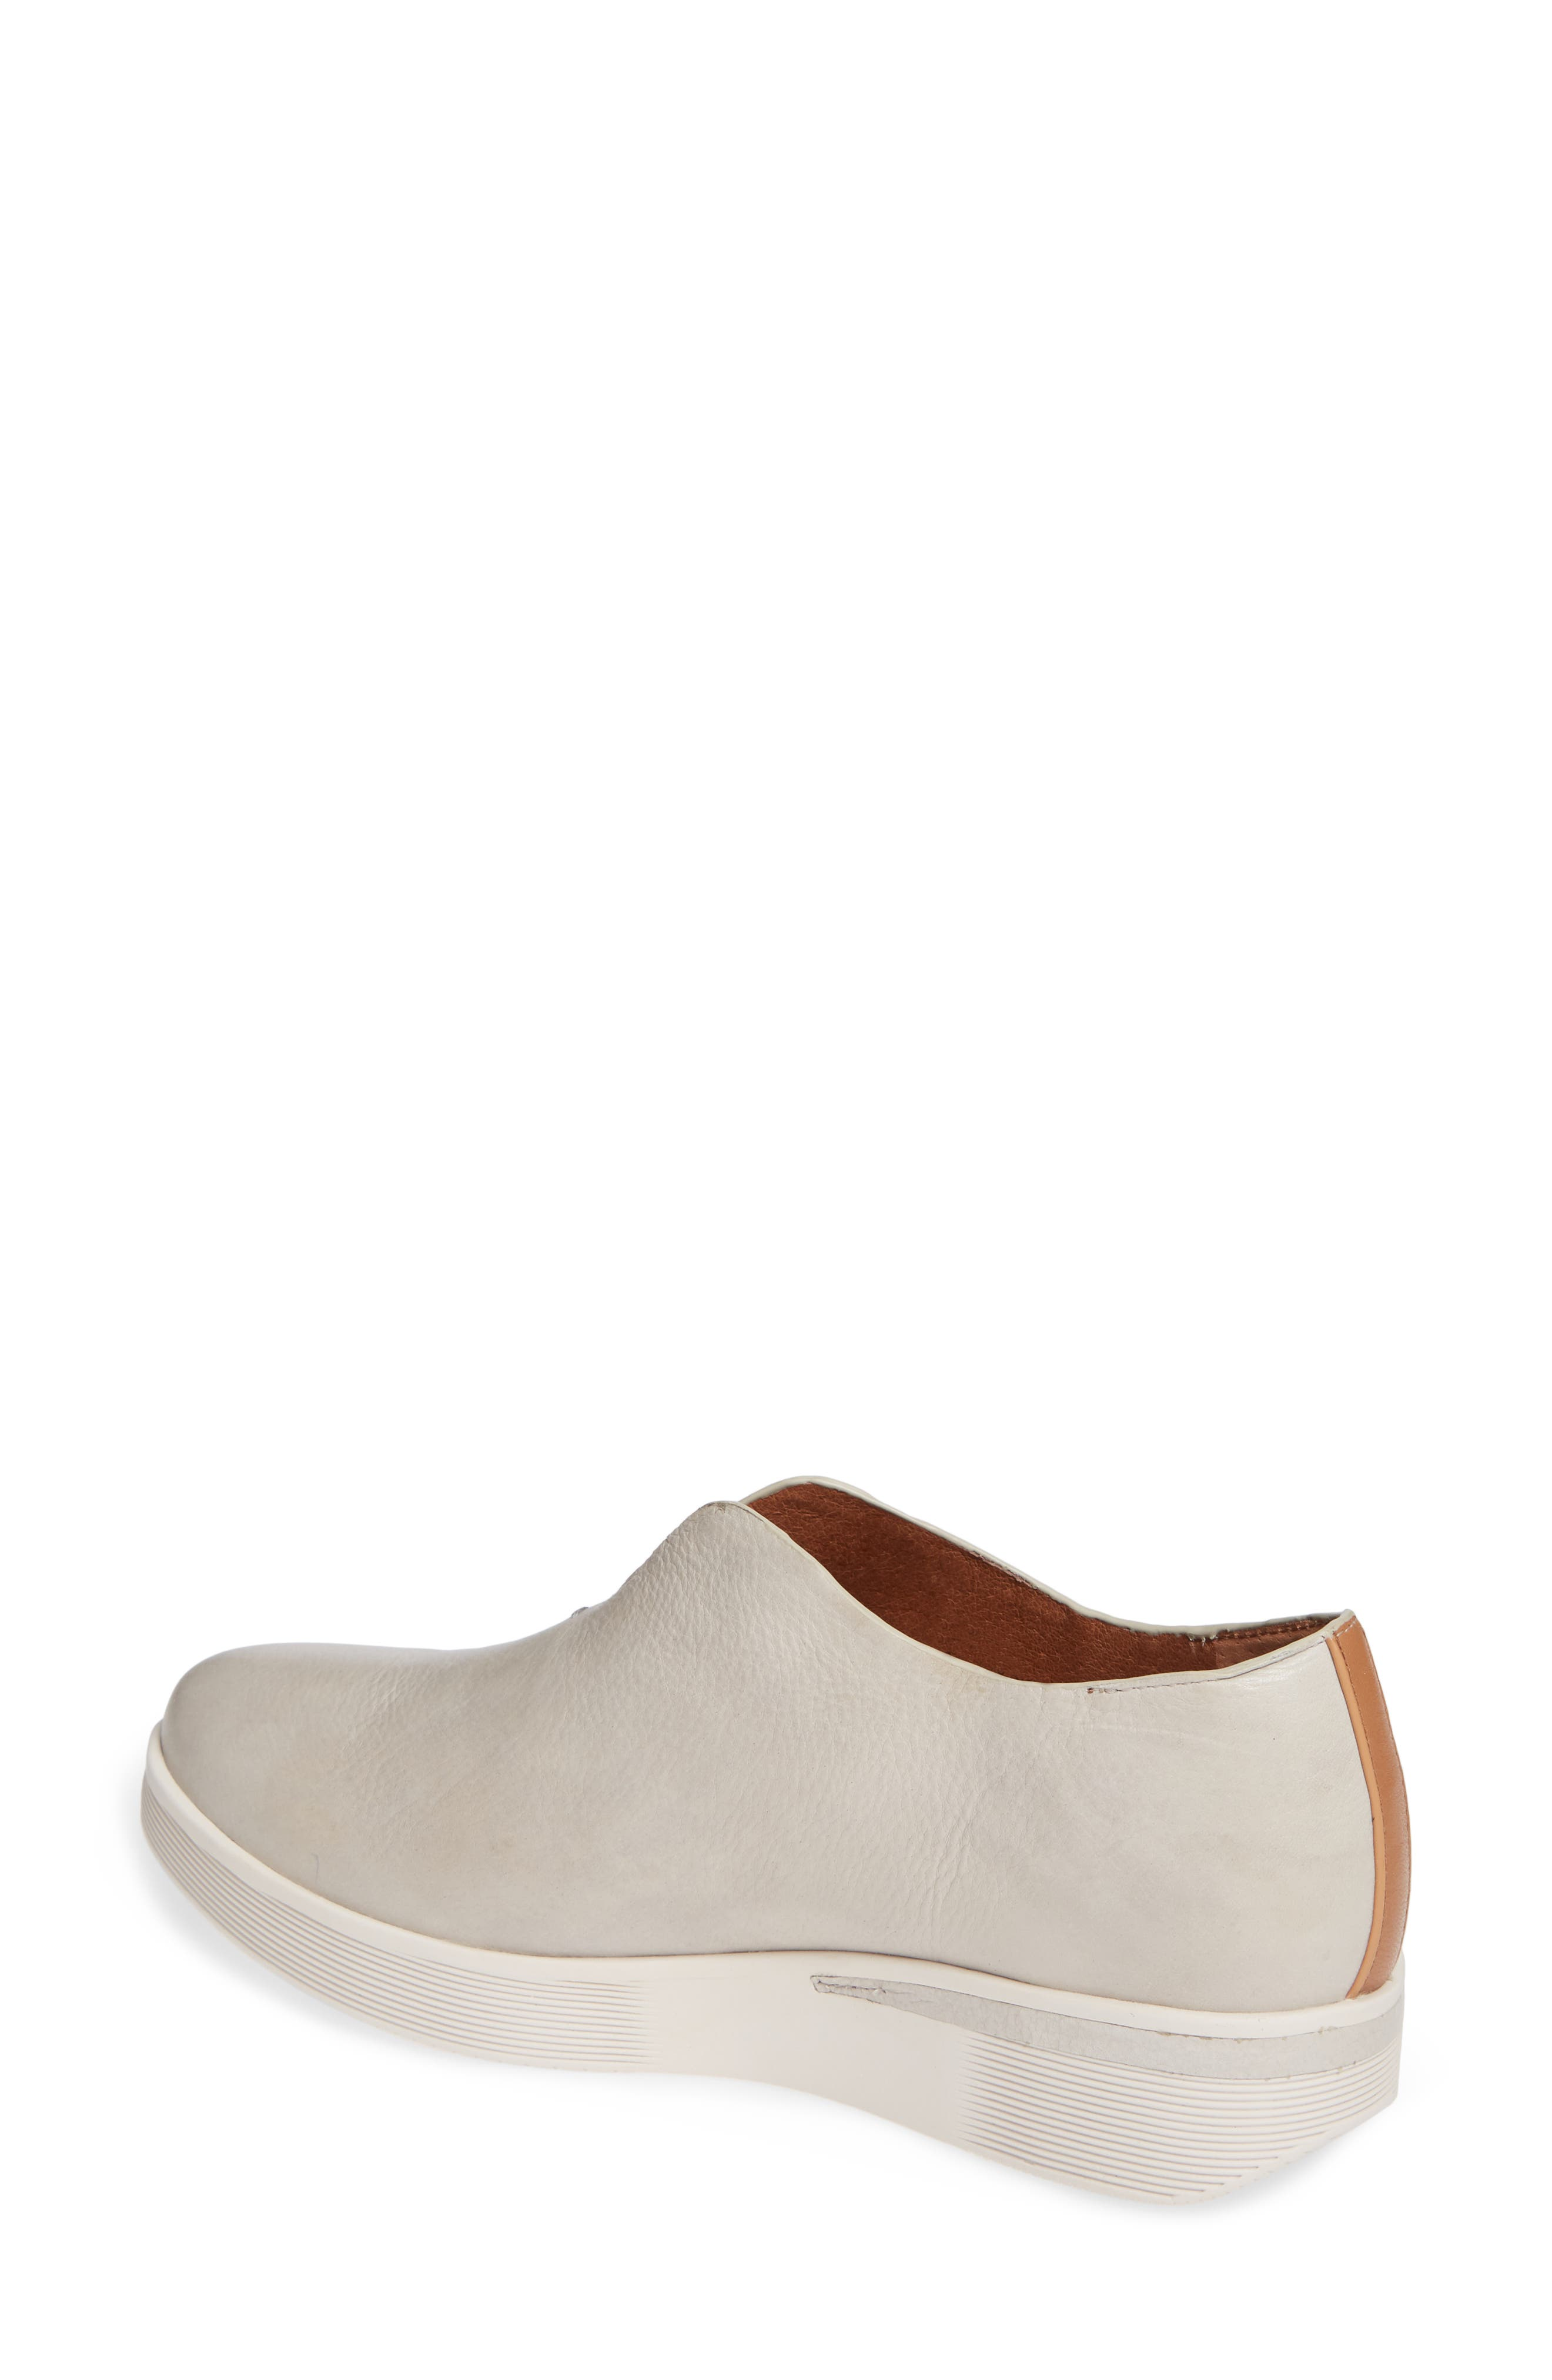 GENTLE SOULS BY KENNETH COLE, Hanna Slip-On Sneaker, Alternate thumbnail 2, color, LIGHT GREY LEATHER